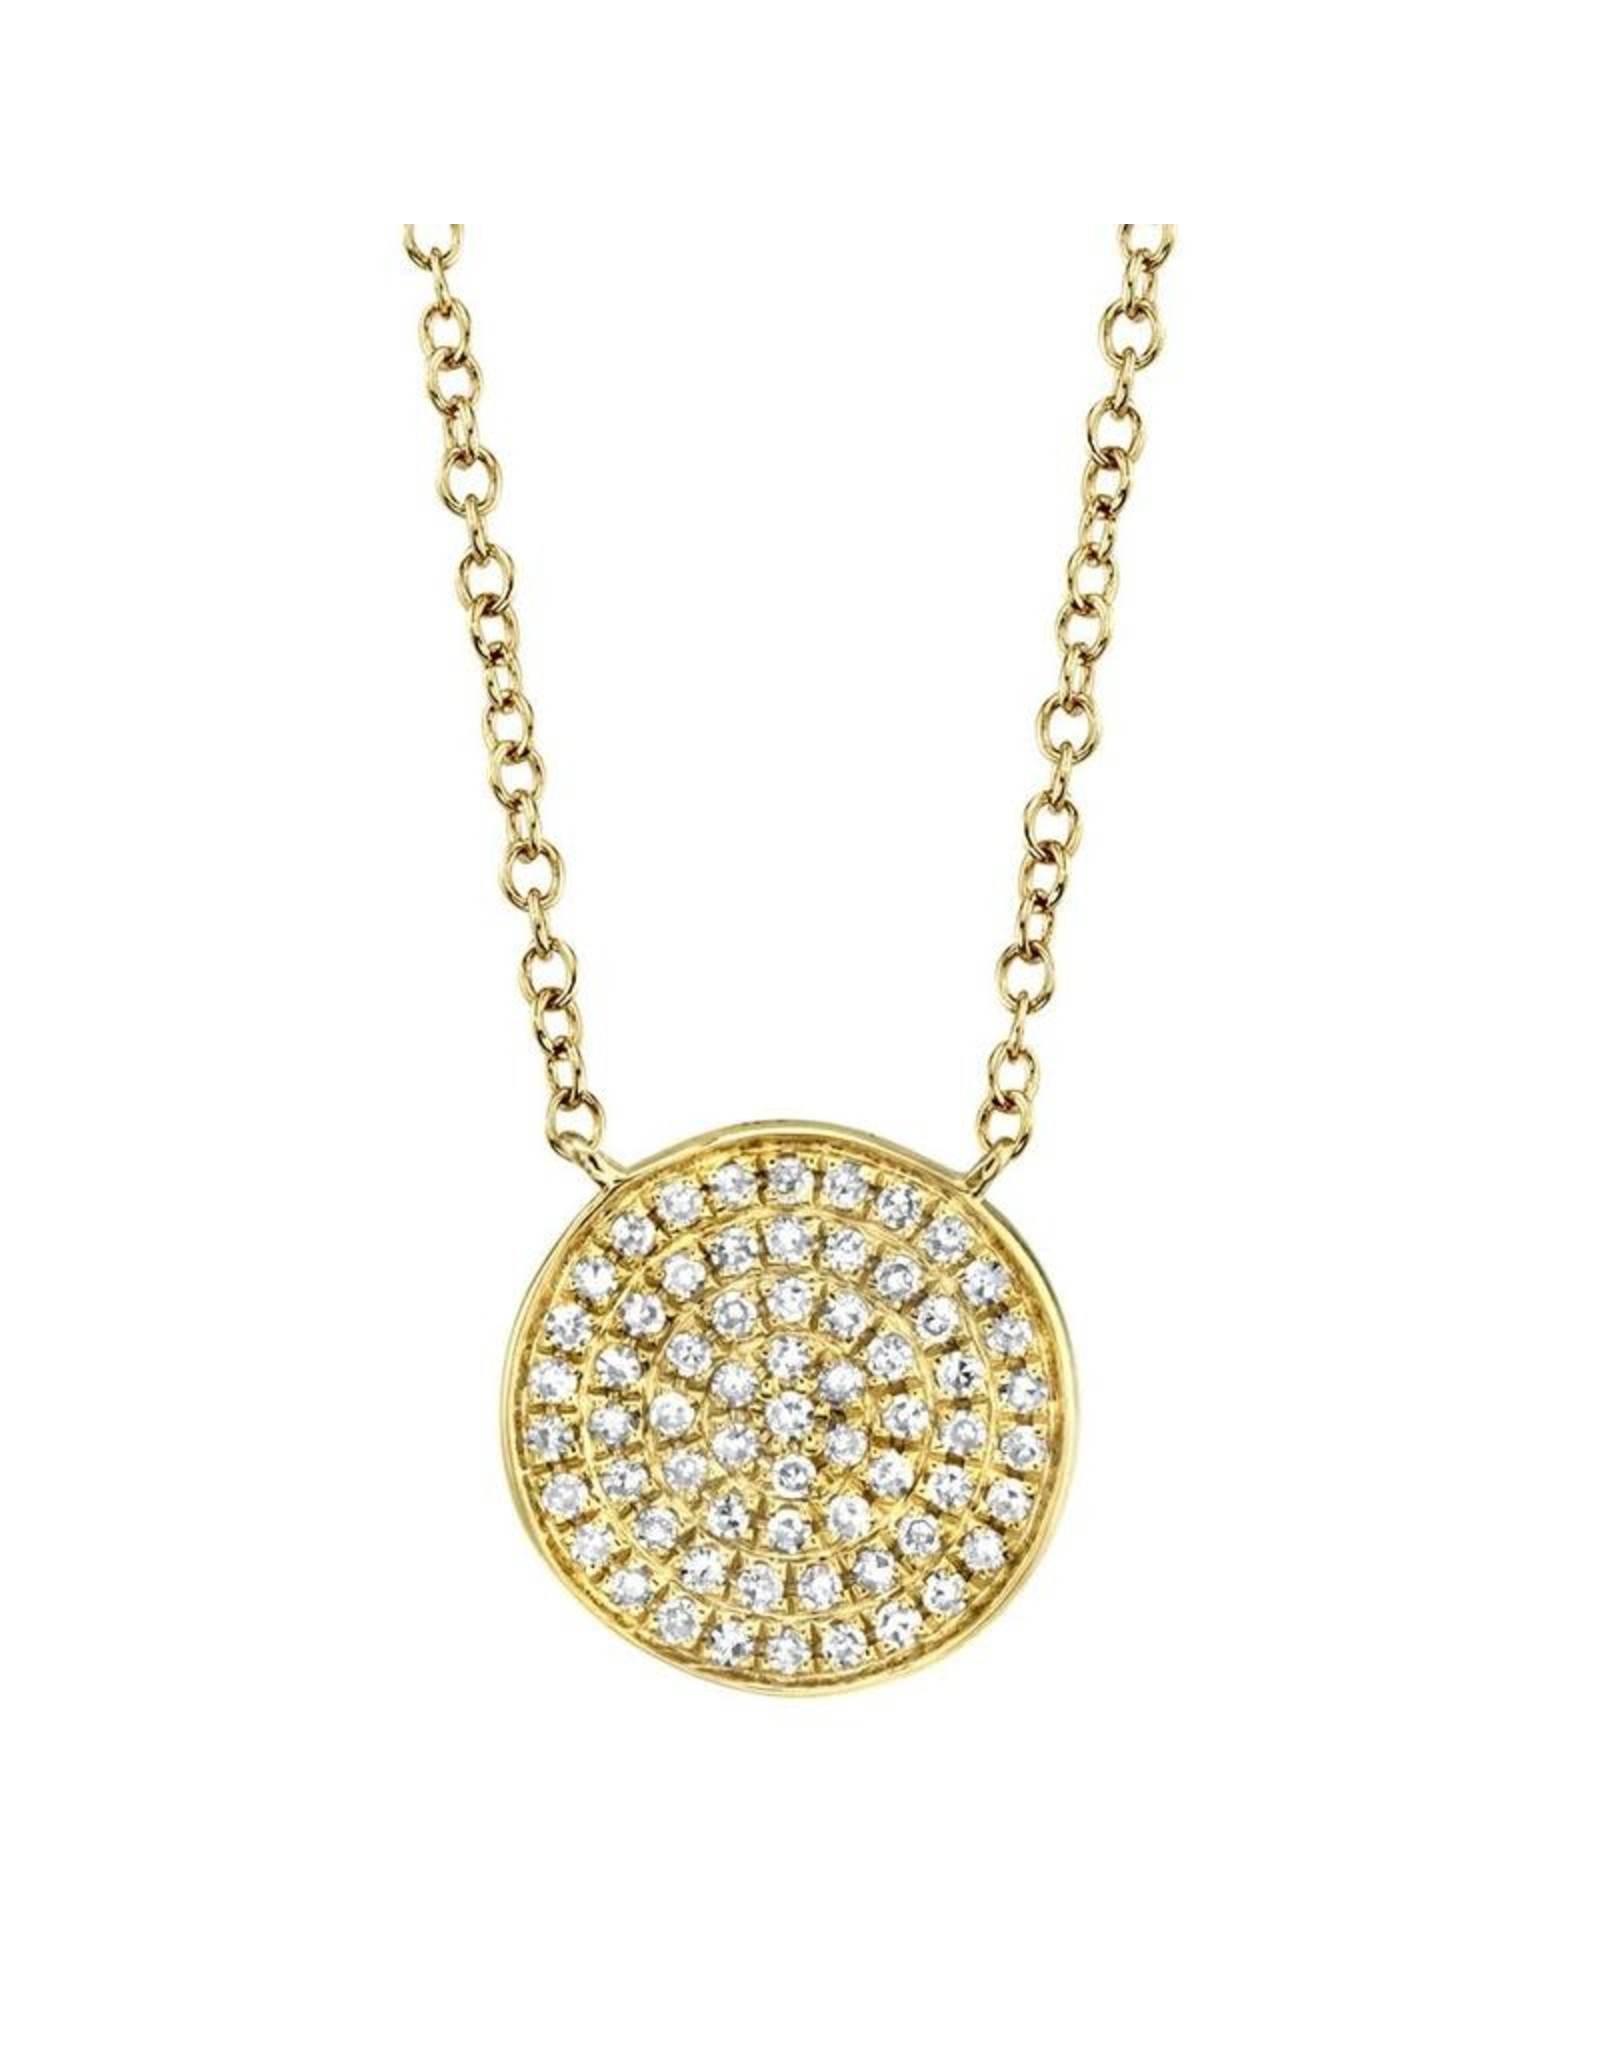 14K Yellow Gold Pave Disc Necklace, D: 0.15ct